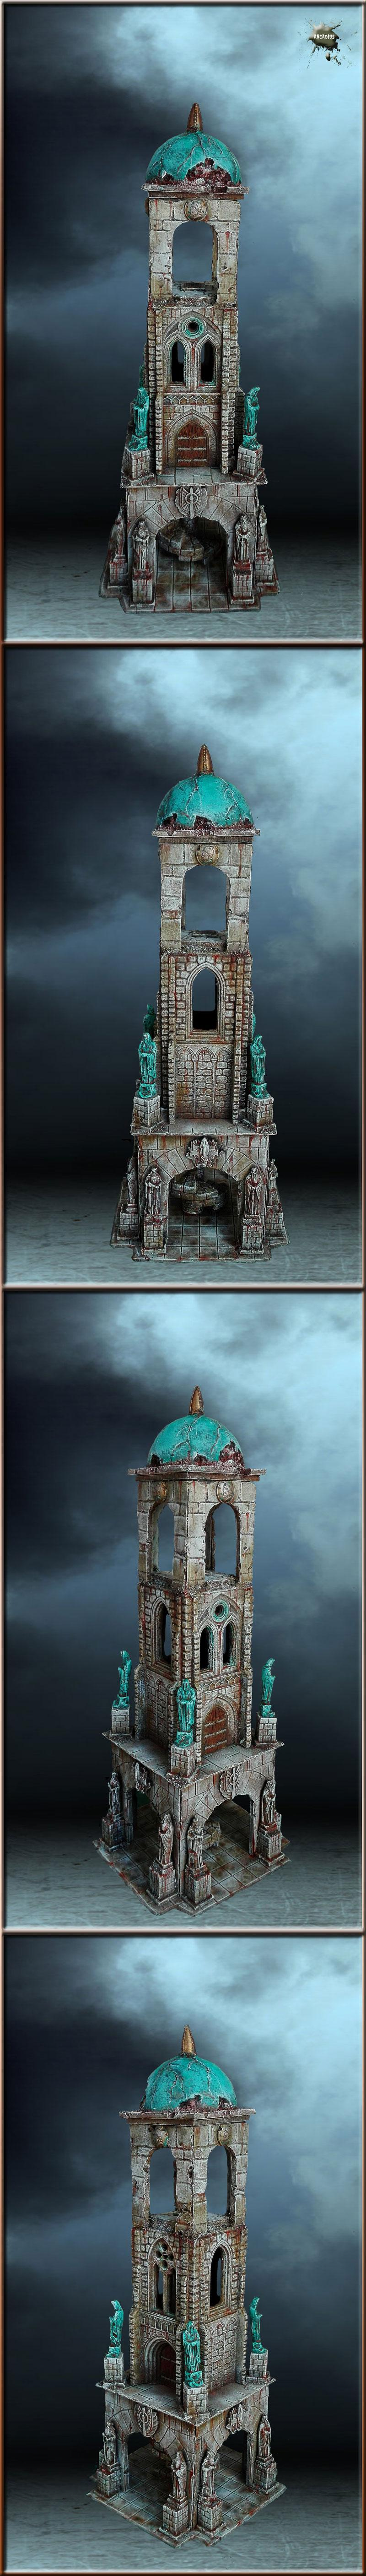 Gothic, Lord Of The Rings, Terrain, Tower